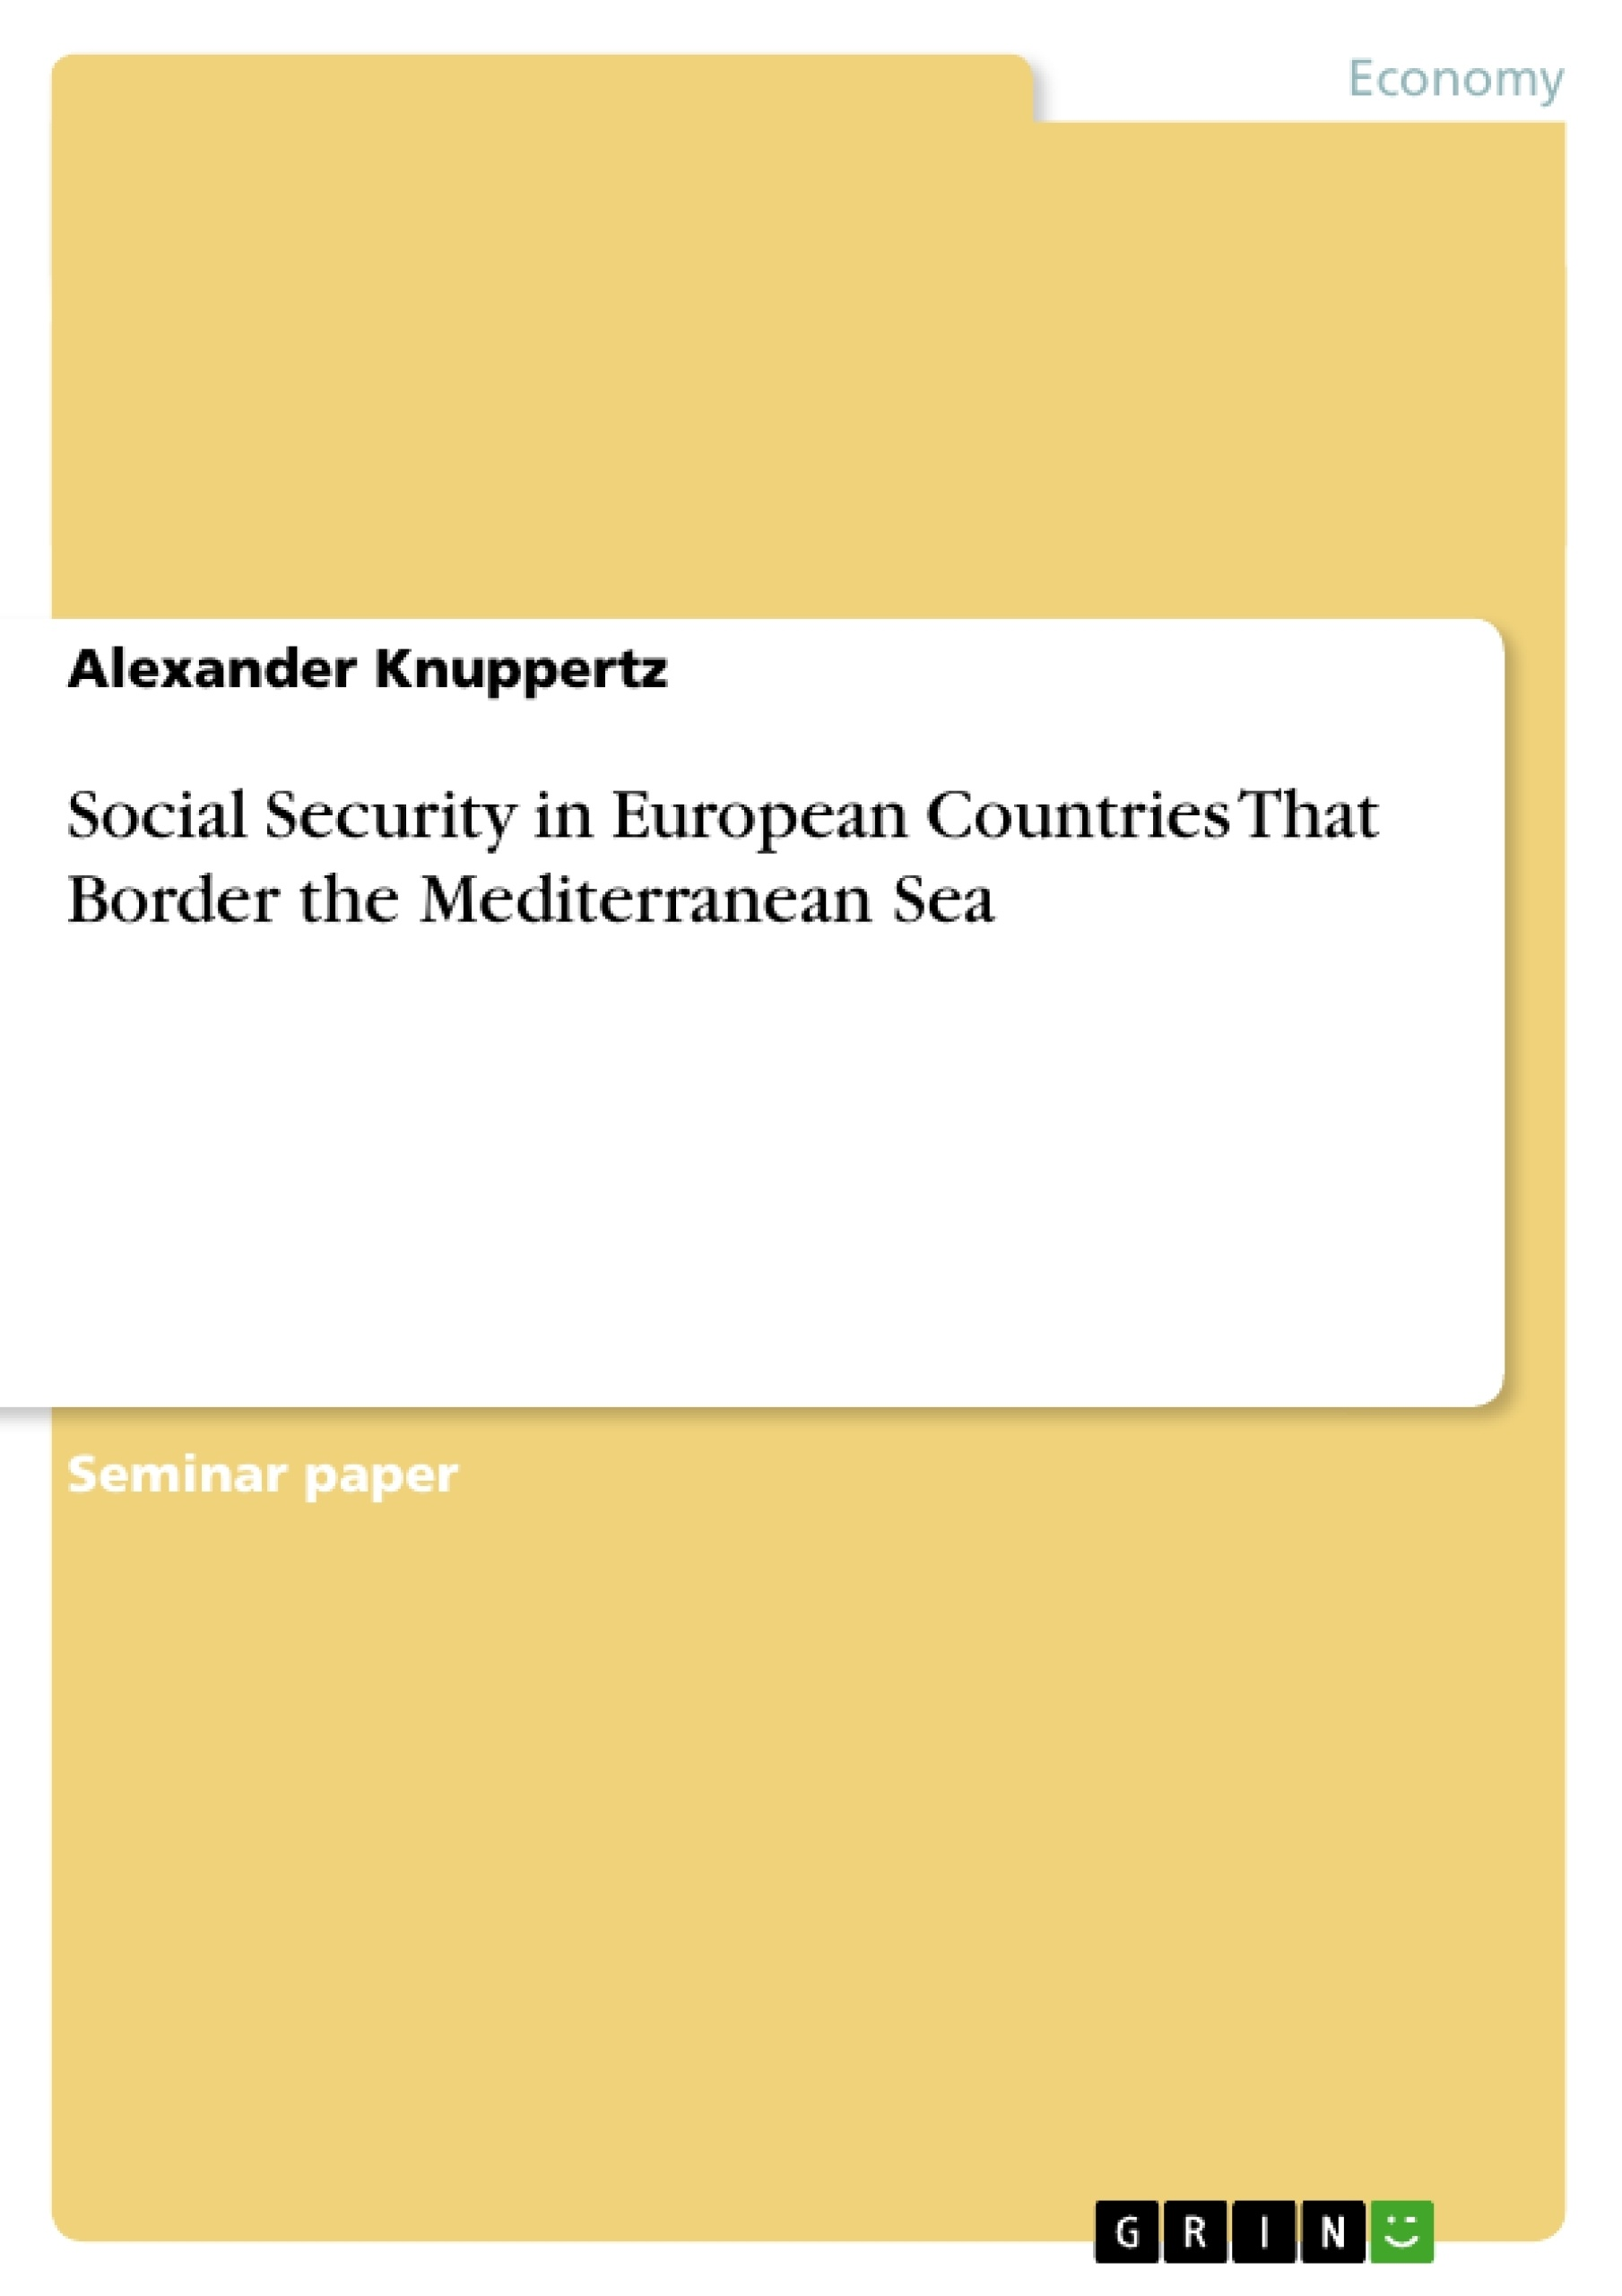 Title: Social Security in European Countries That Border the Mediterranean Sea